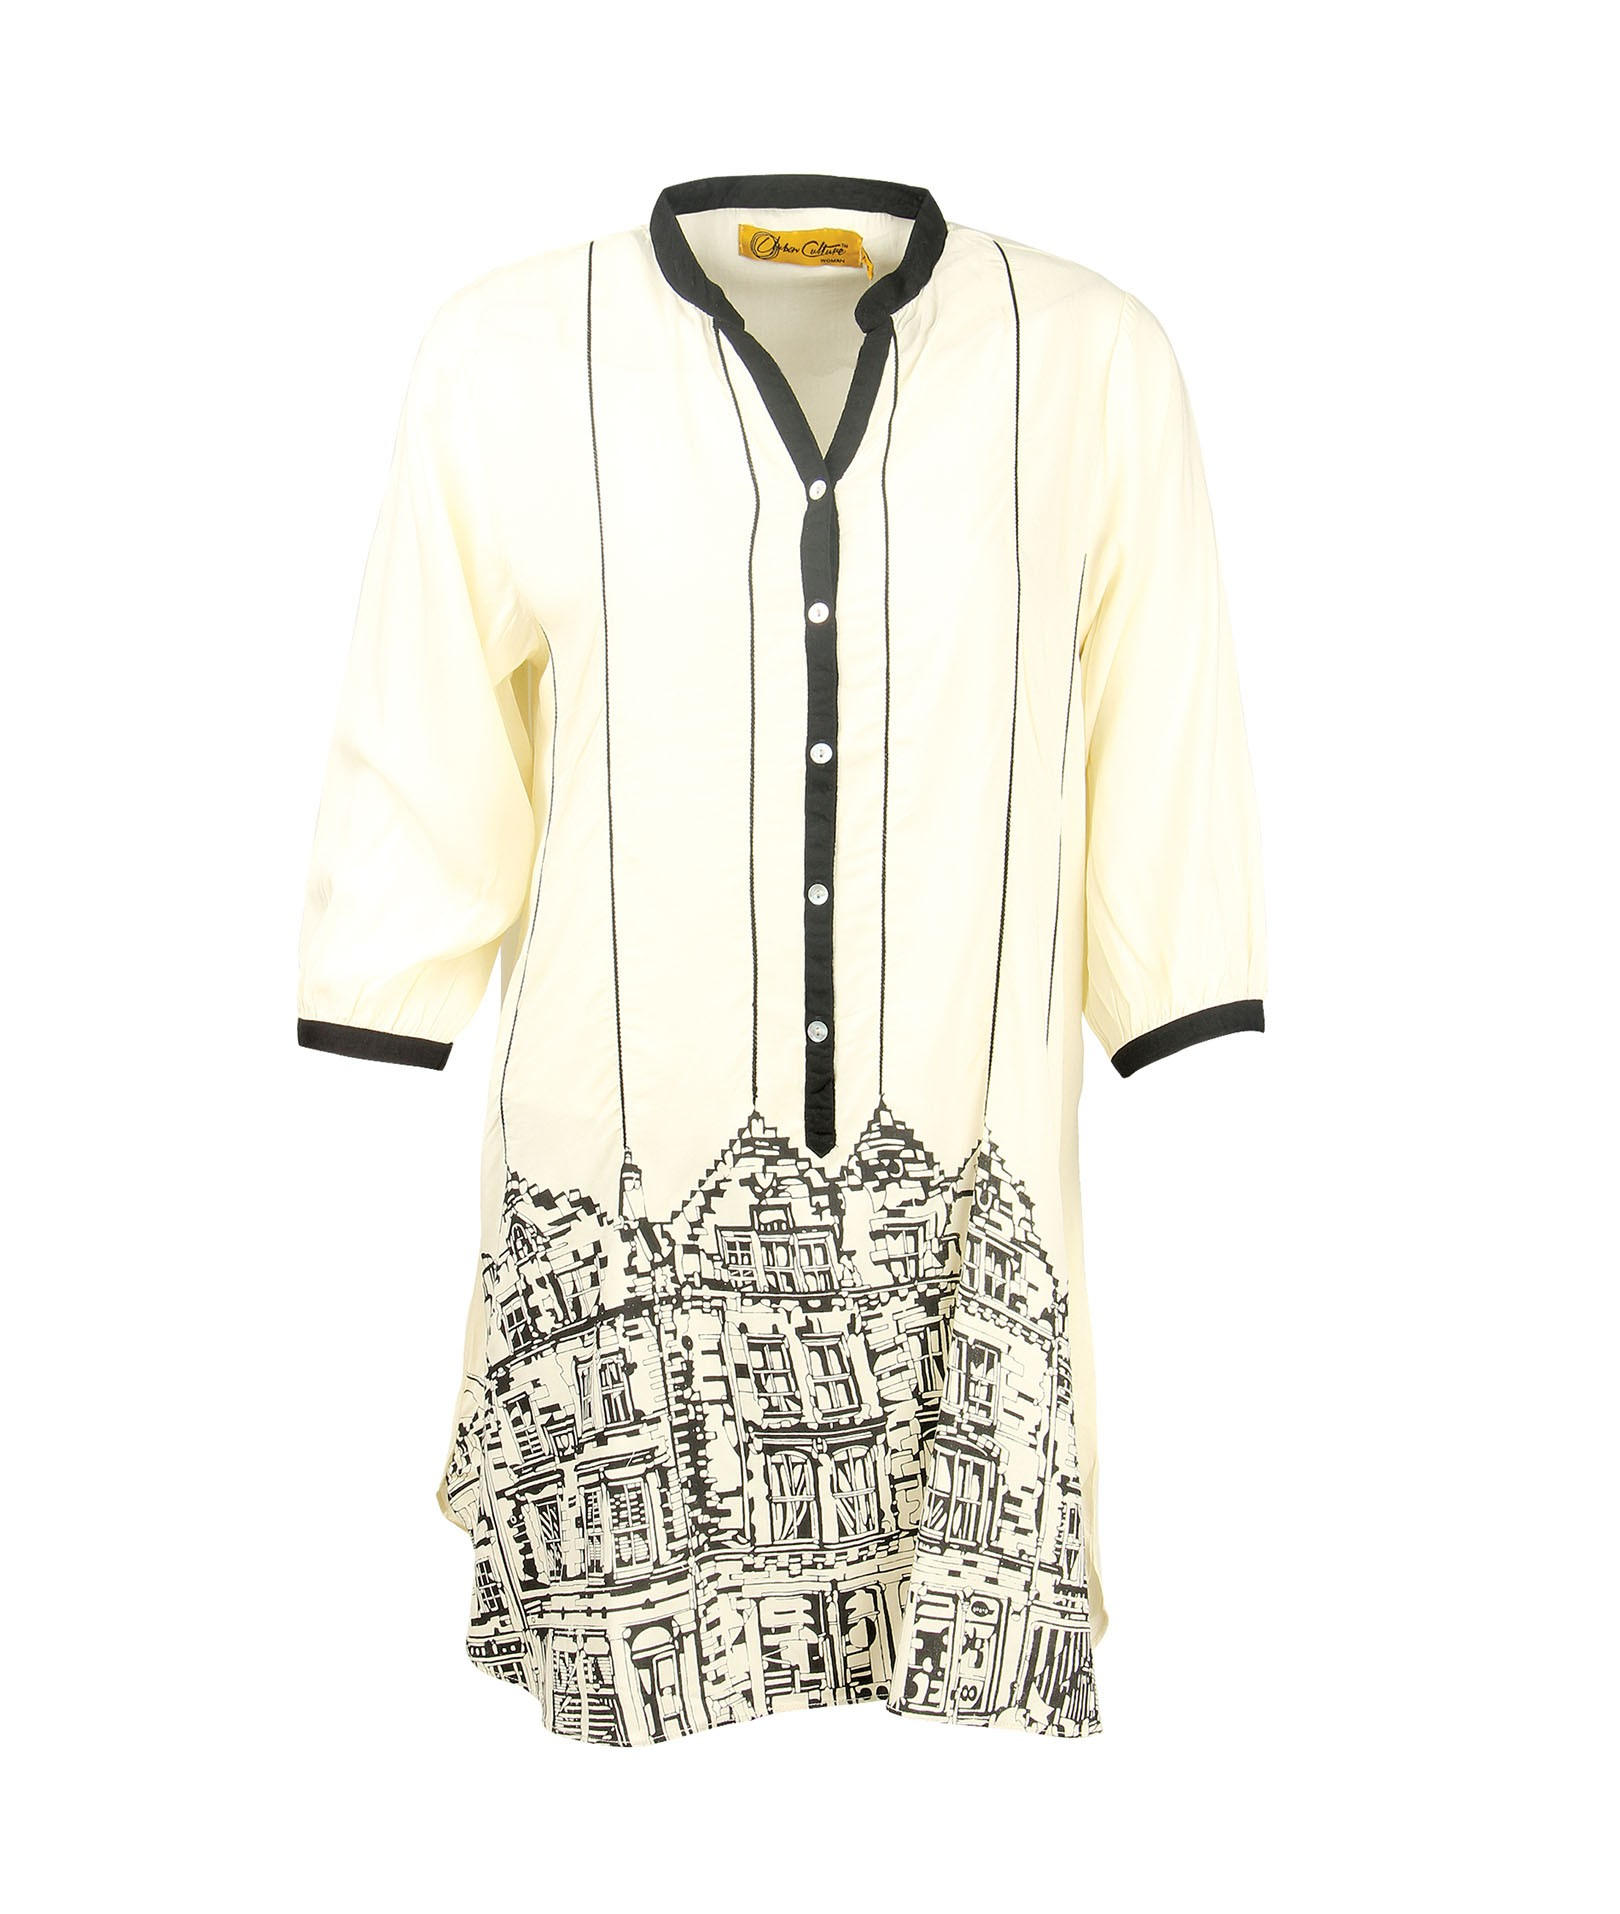 Urban-Culture-Shirts-Collection-2014-2015 (4)